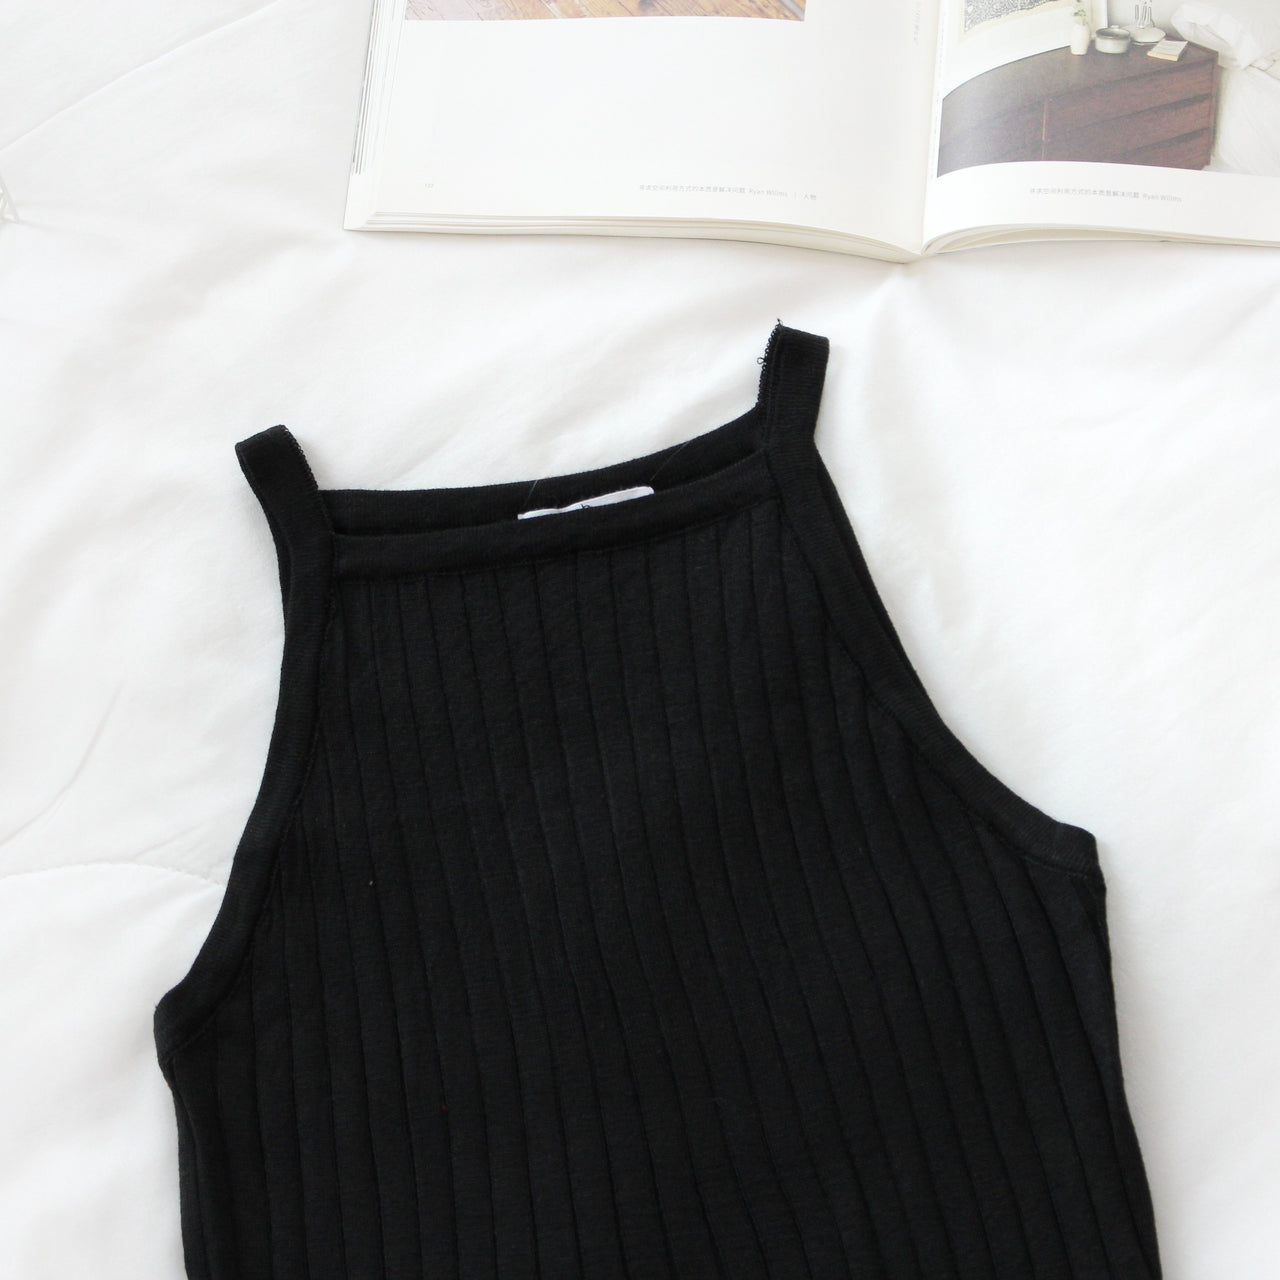 Halter Tank - LovelyMadness Clothing Online Fashion Malaysia